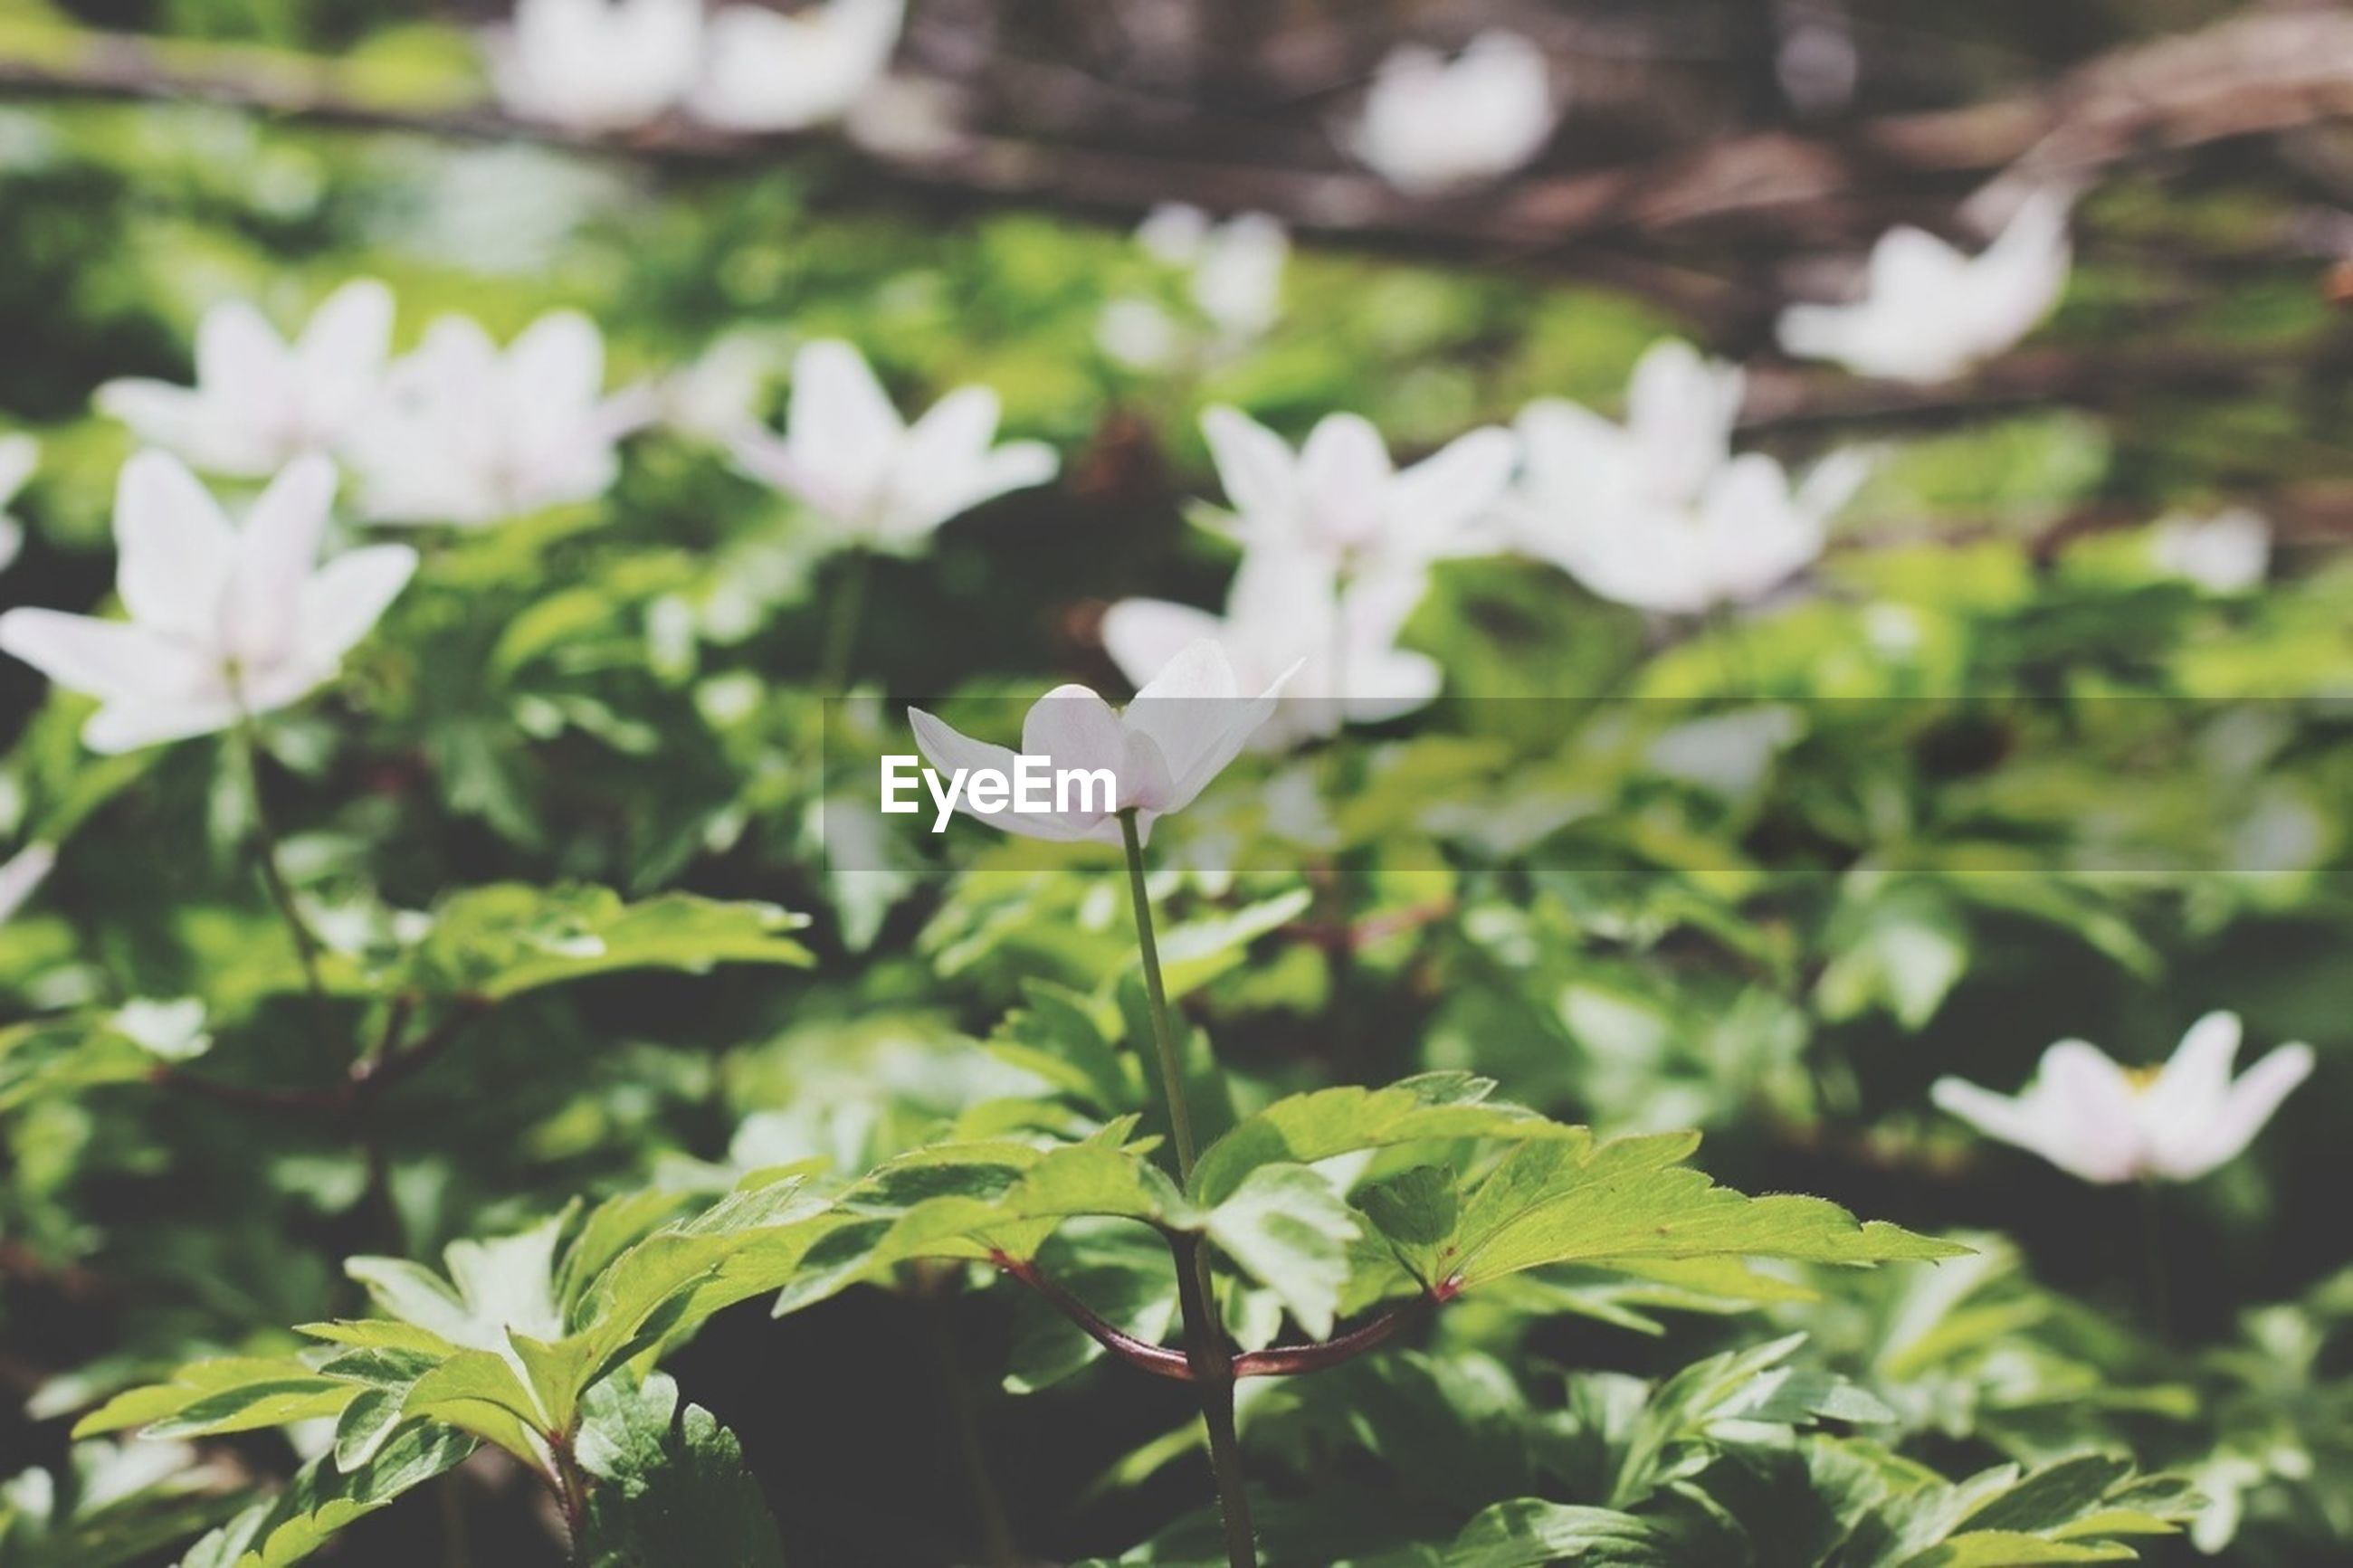 flower, freshness, growth, petal, fragility, flower head, beauty in nature, blooming, white color, focus on foreground, nature, plant, in bloom, close-up, stem, leaf, park - man made space, blossom, green color, outdoors